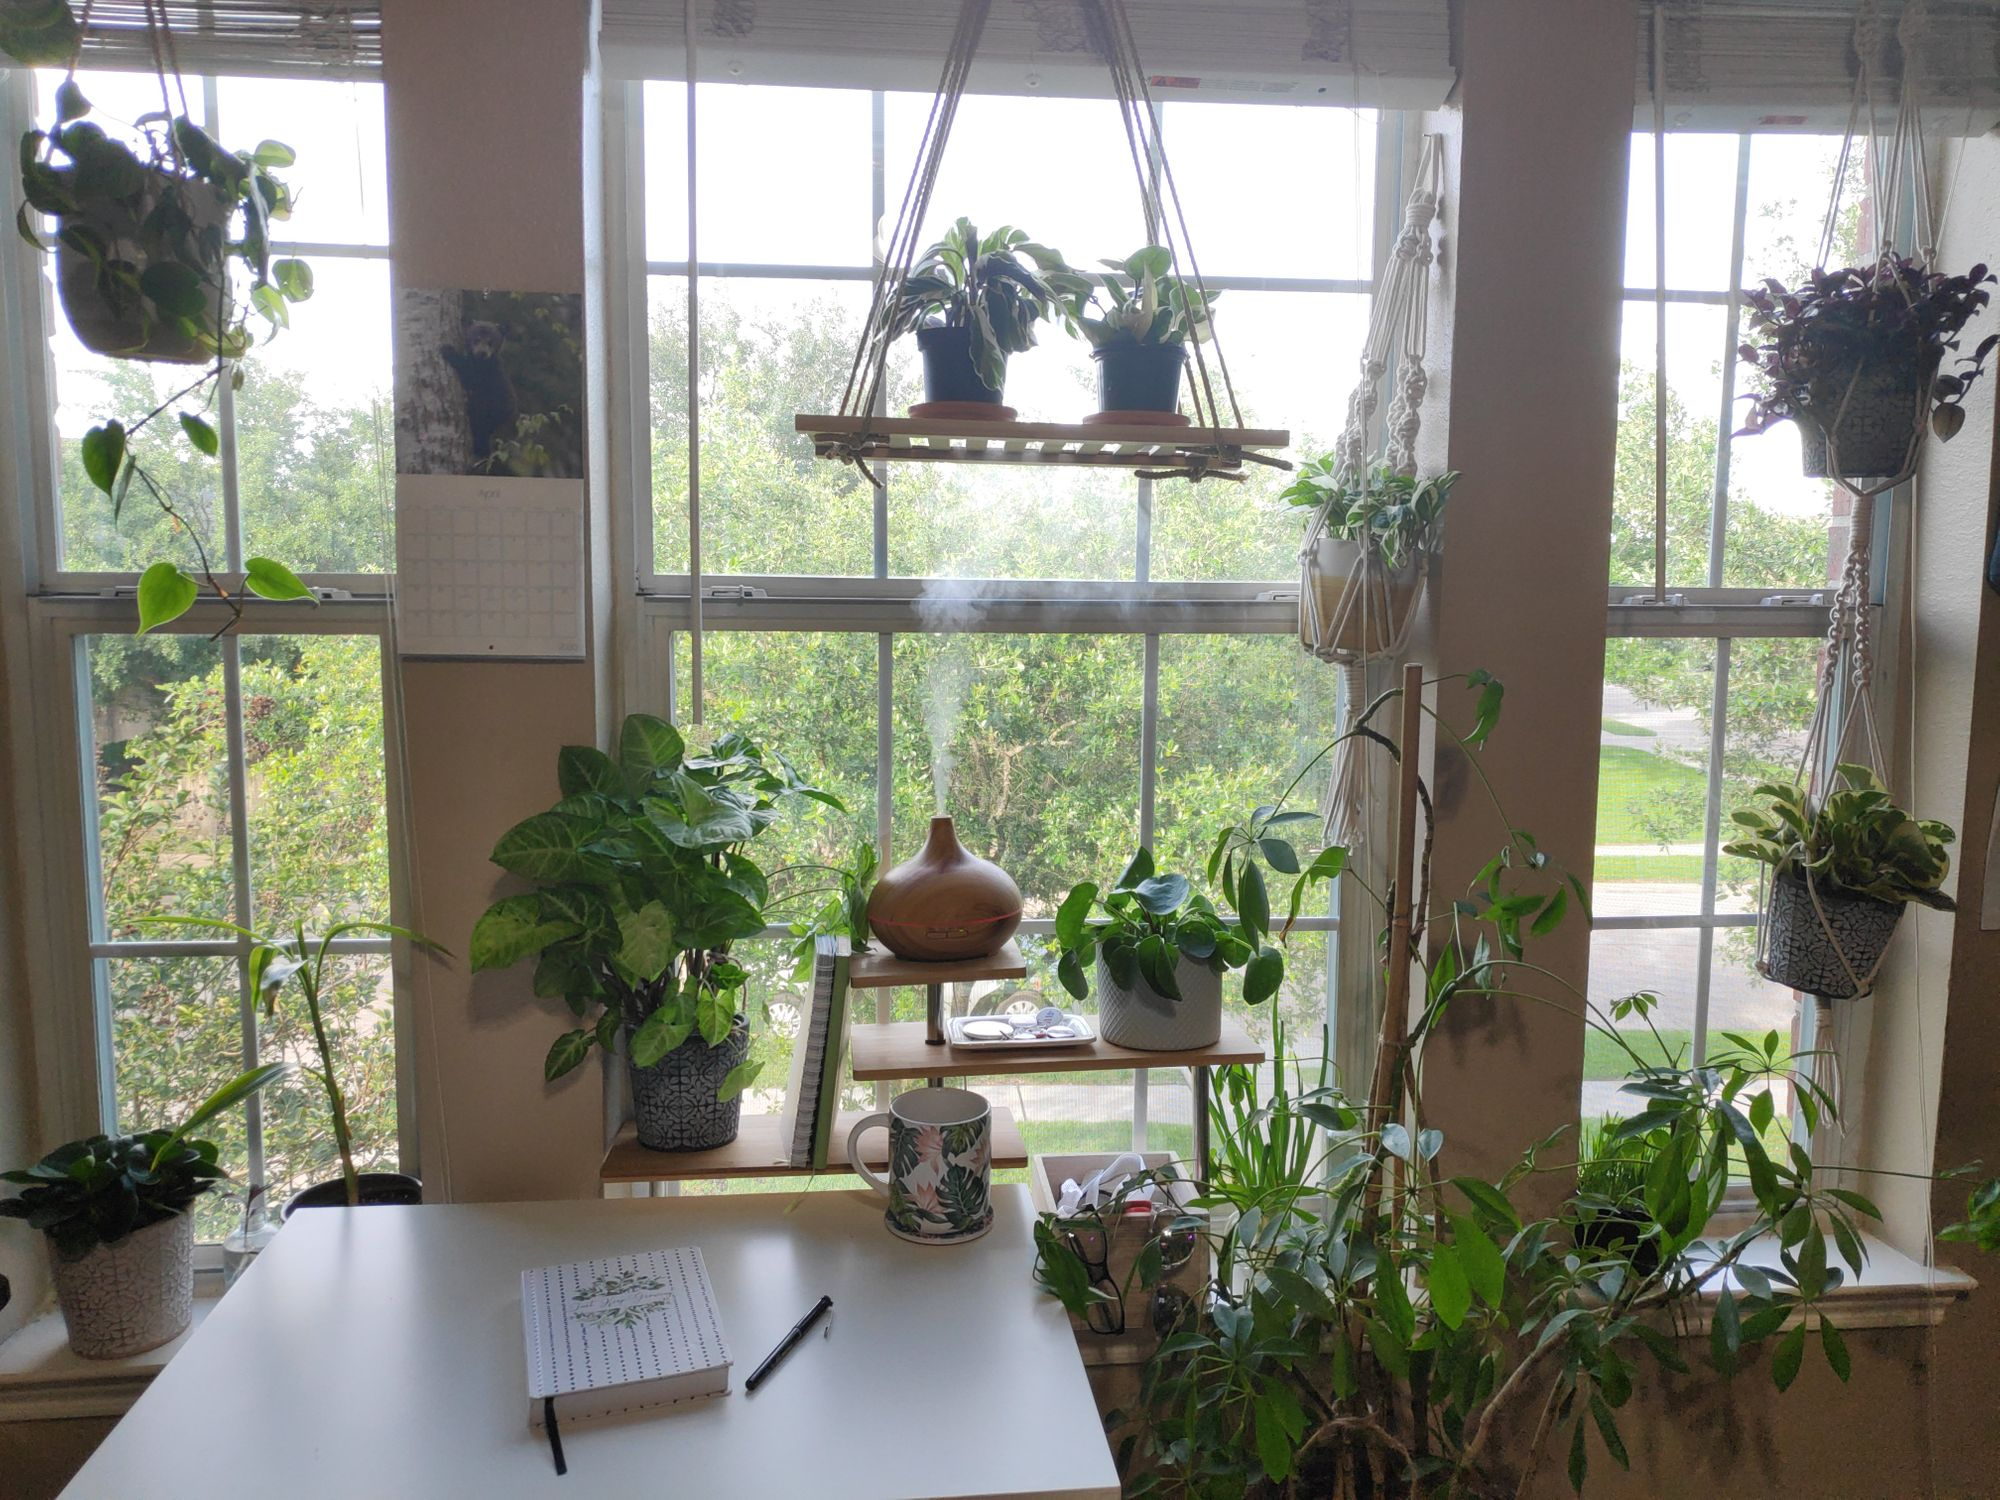 Tropical plants enjoy the bright indirect light of a large Eastern window, with high humidity